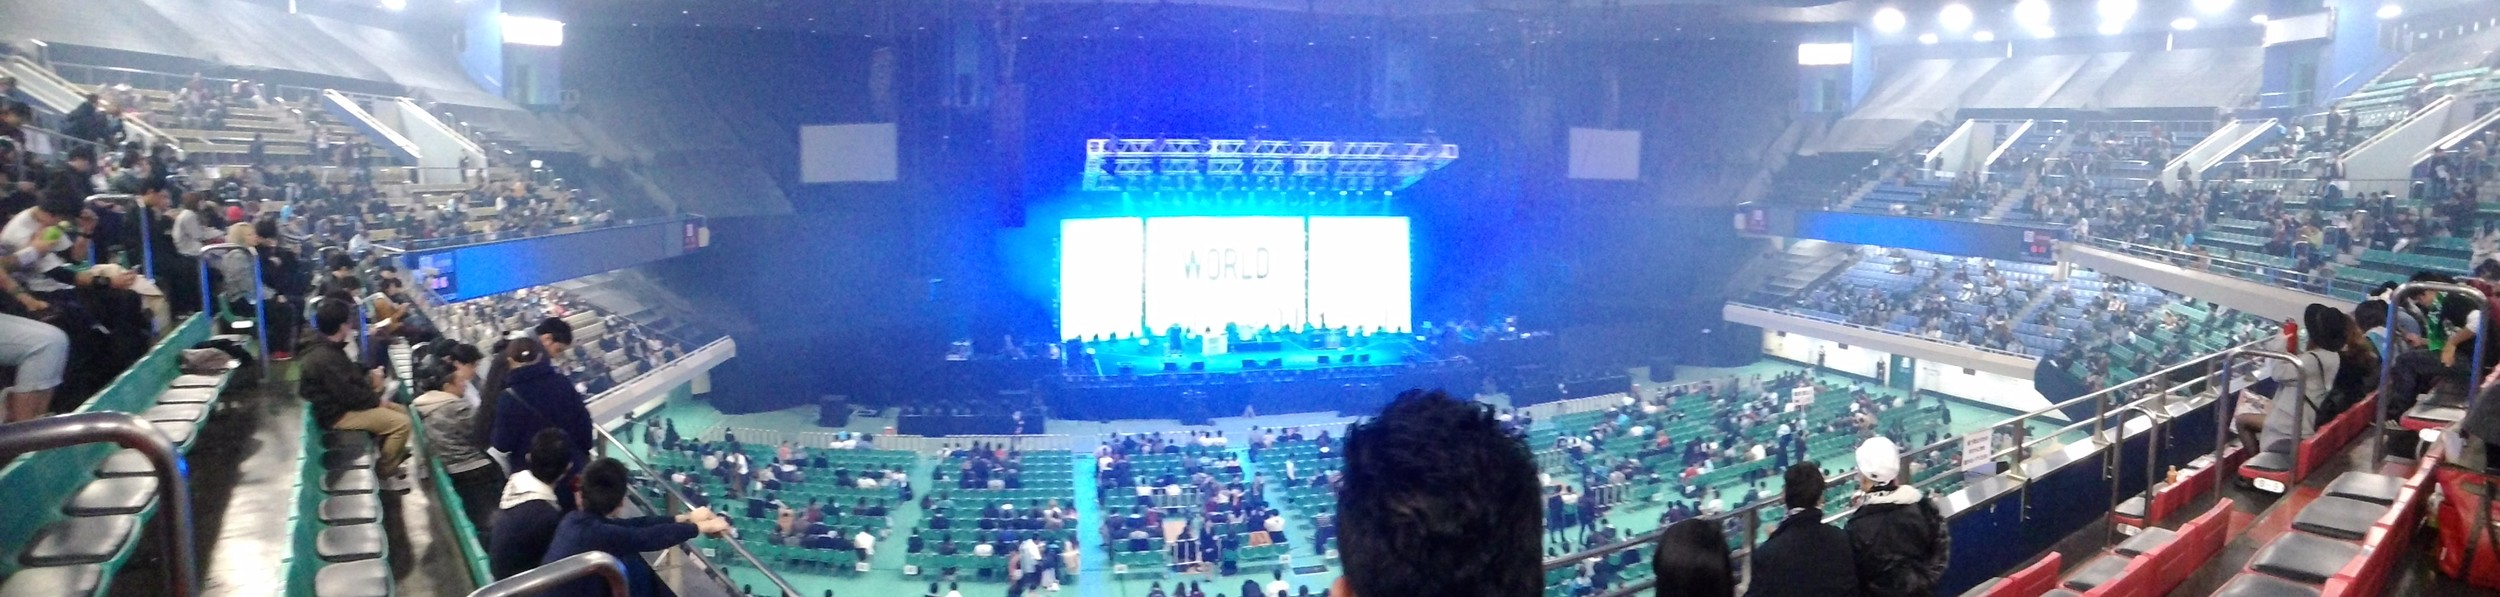 Panoramic view of the Budokan interior from my seat. Great view all around.